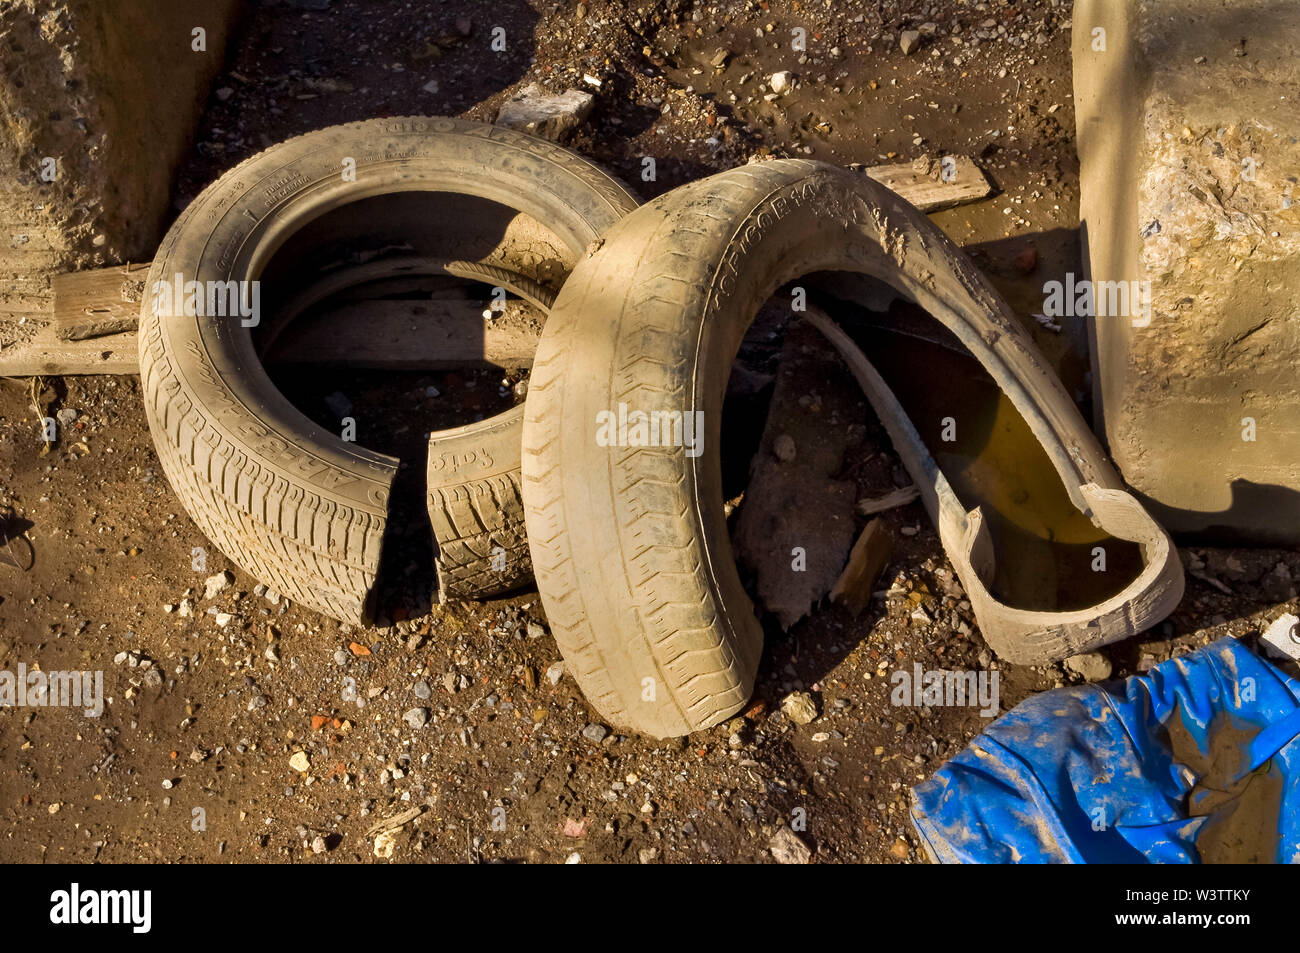 Two Car tyres dumped on waste ground in bright sunshine Stock Photo